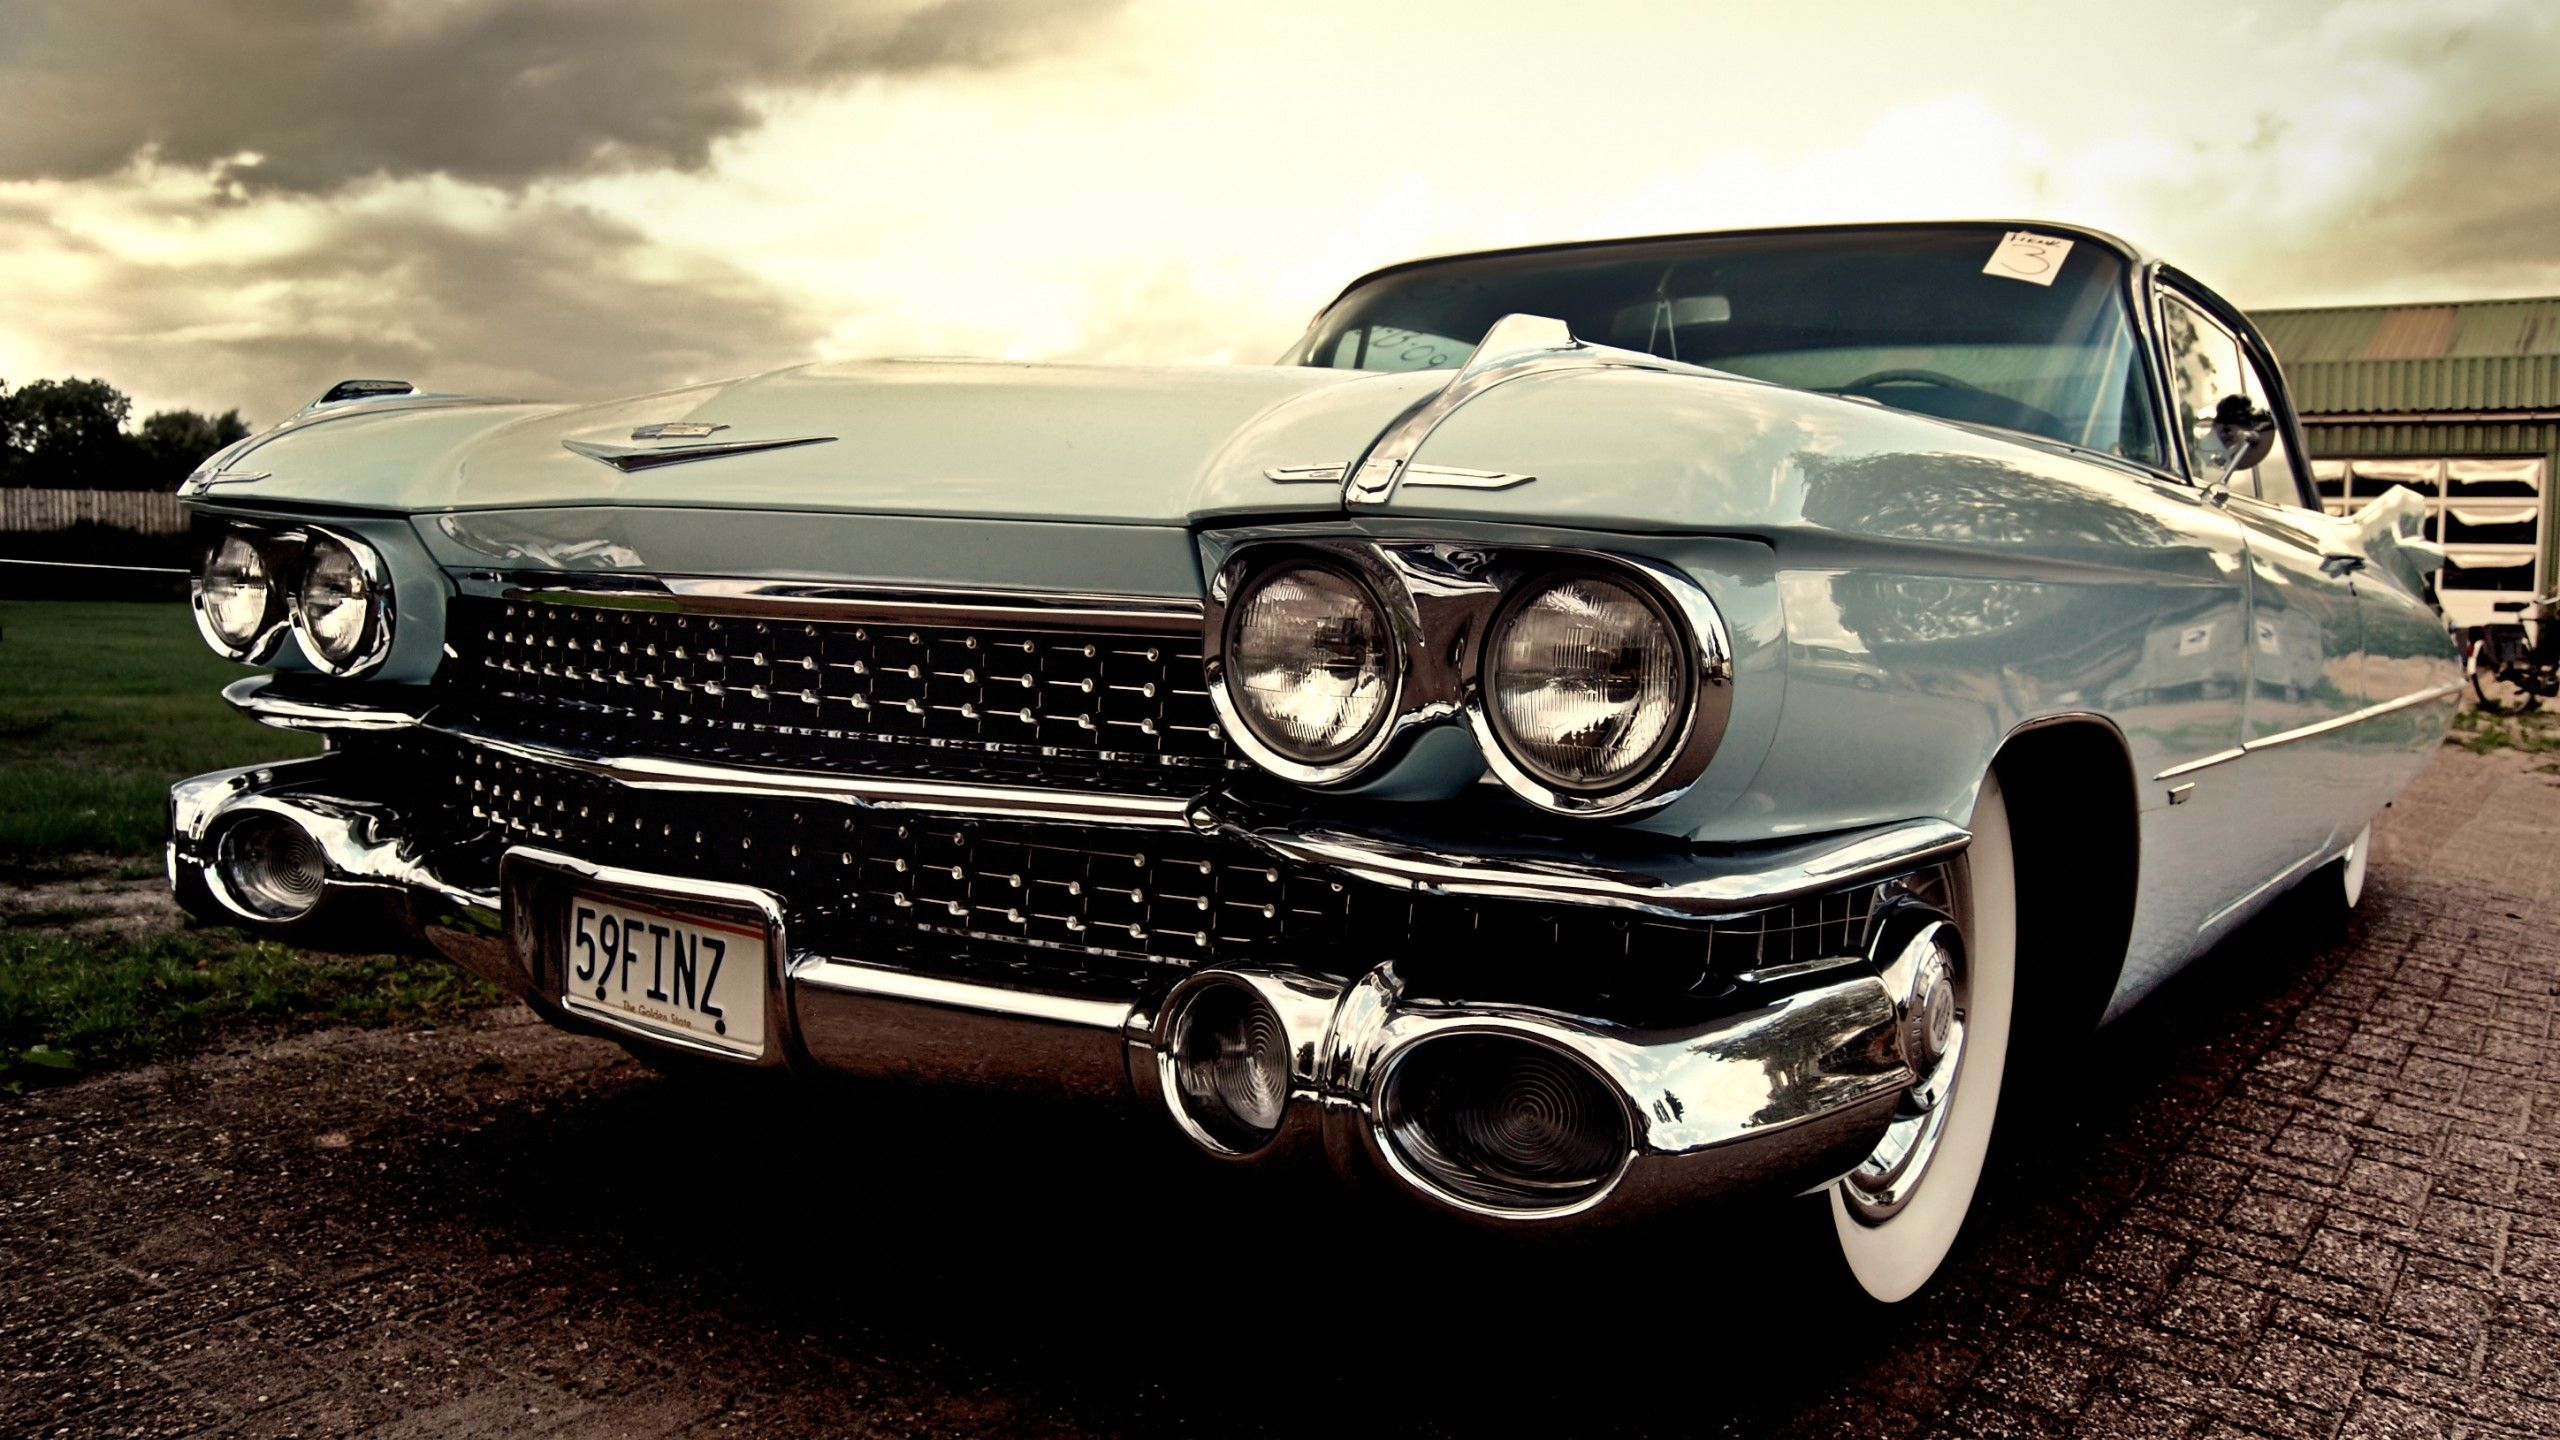 1959 Cadillac DeVille Coupe | Cars | Pinterest | 1959 cadillac ...